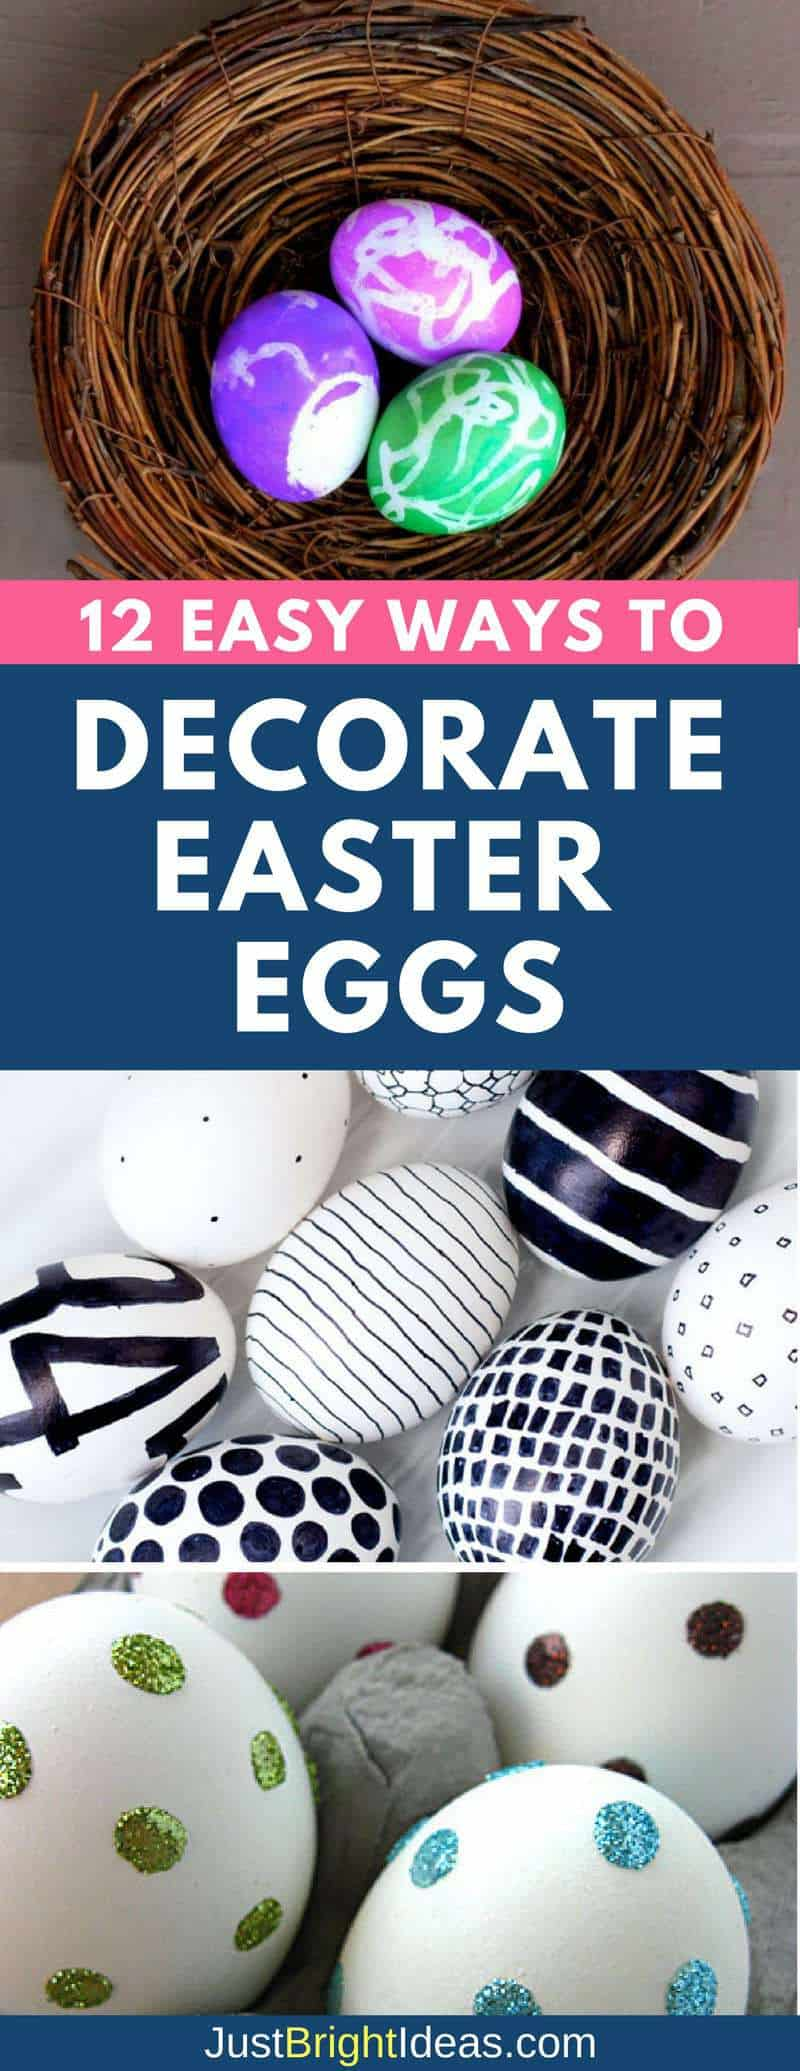 Easter Egg Decorating Ideas - Pinterest